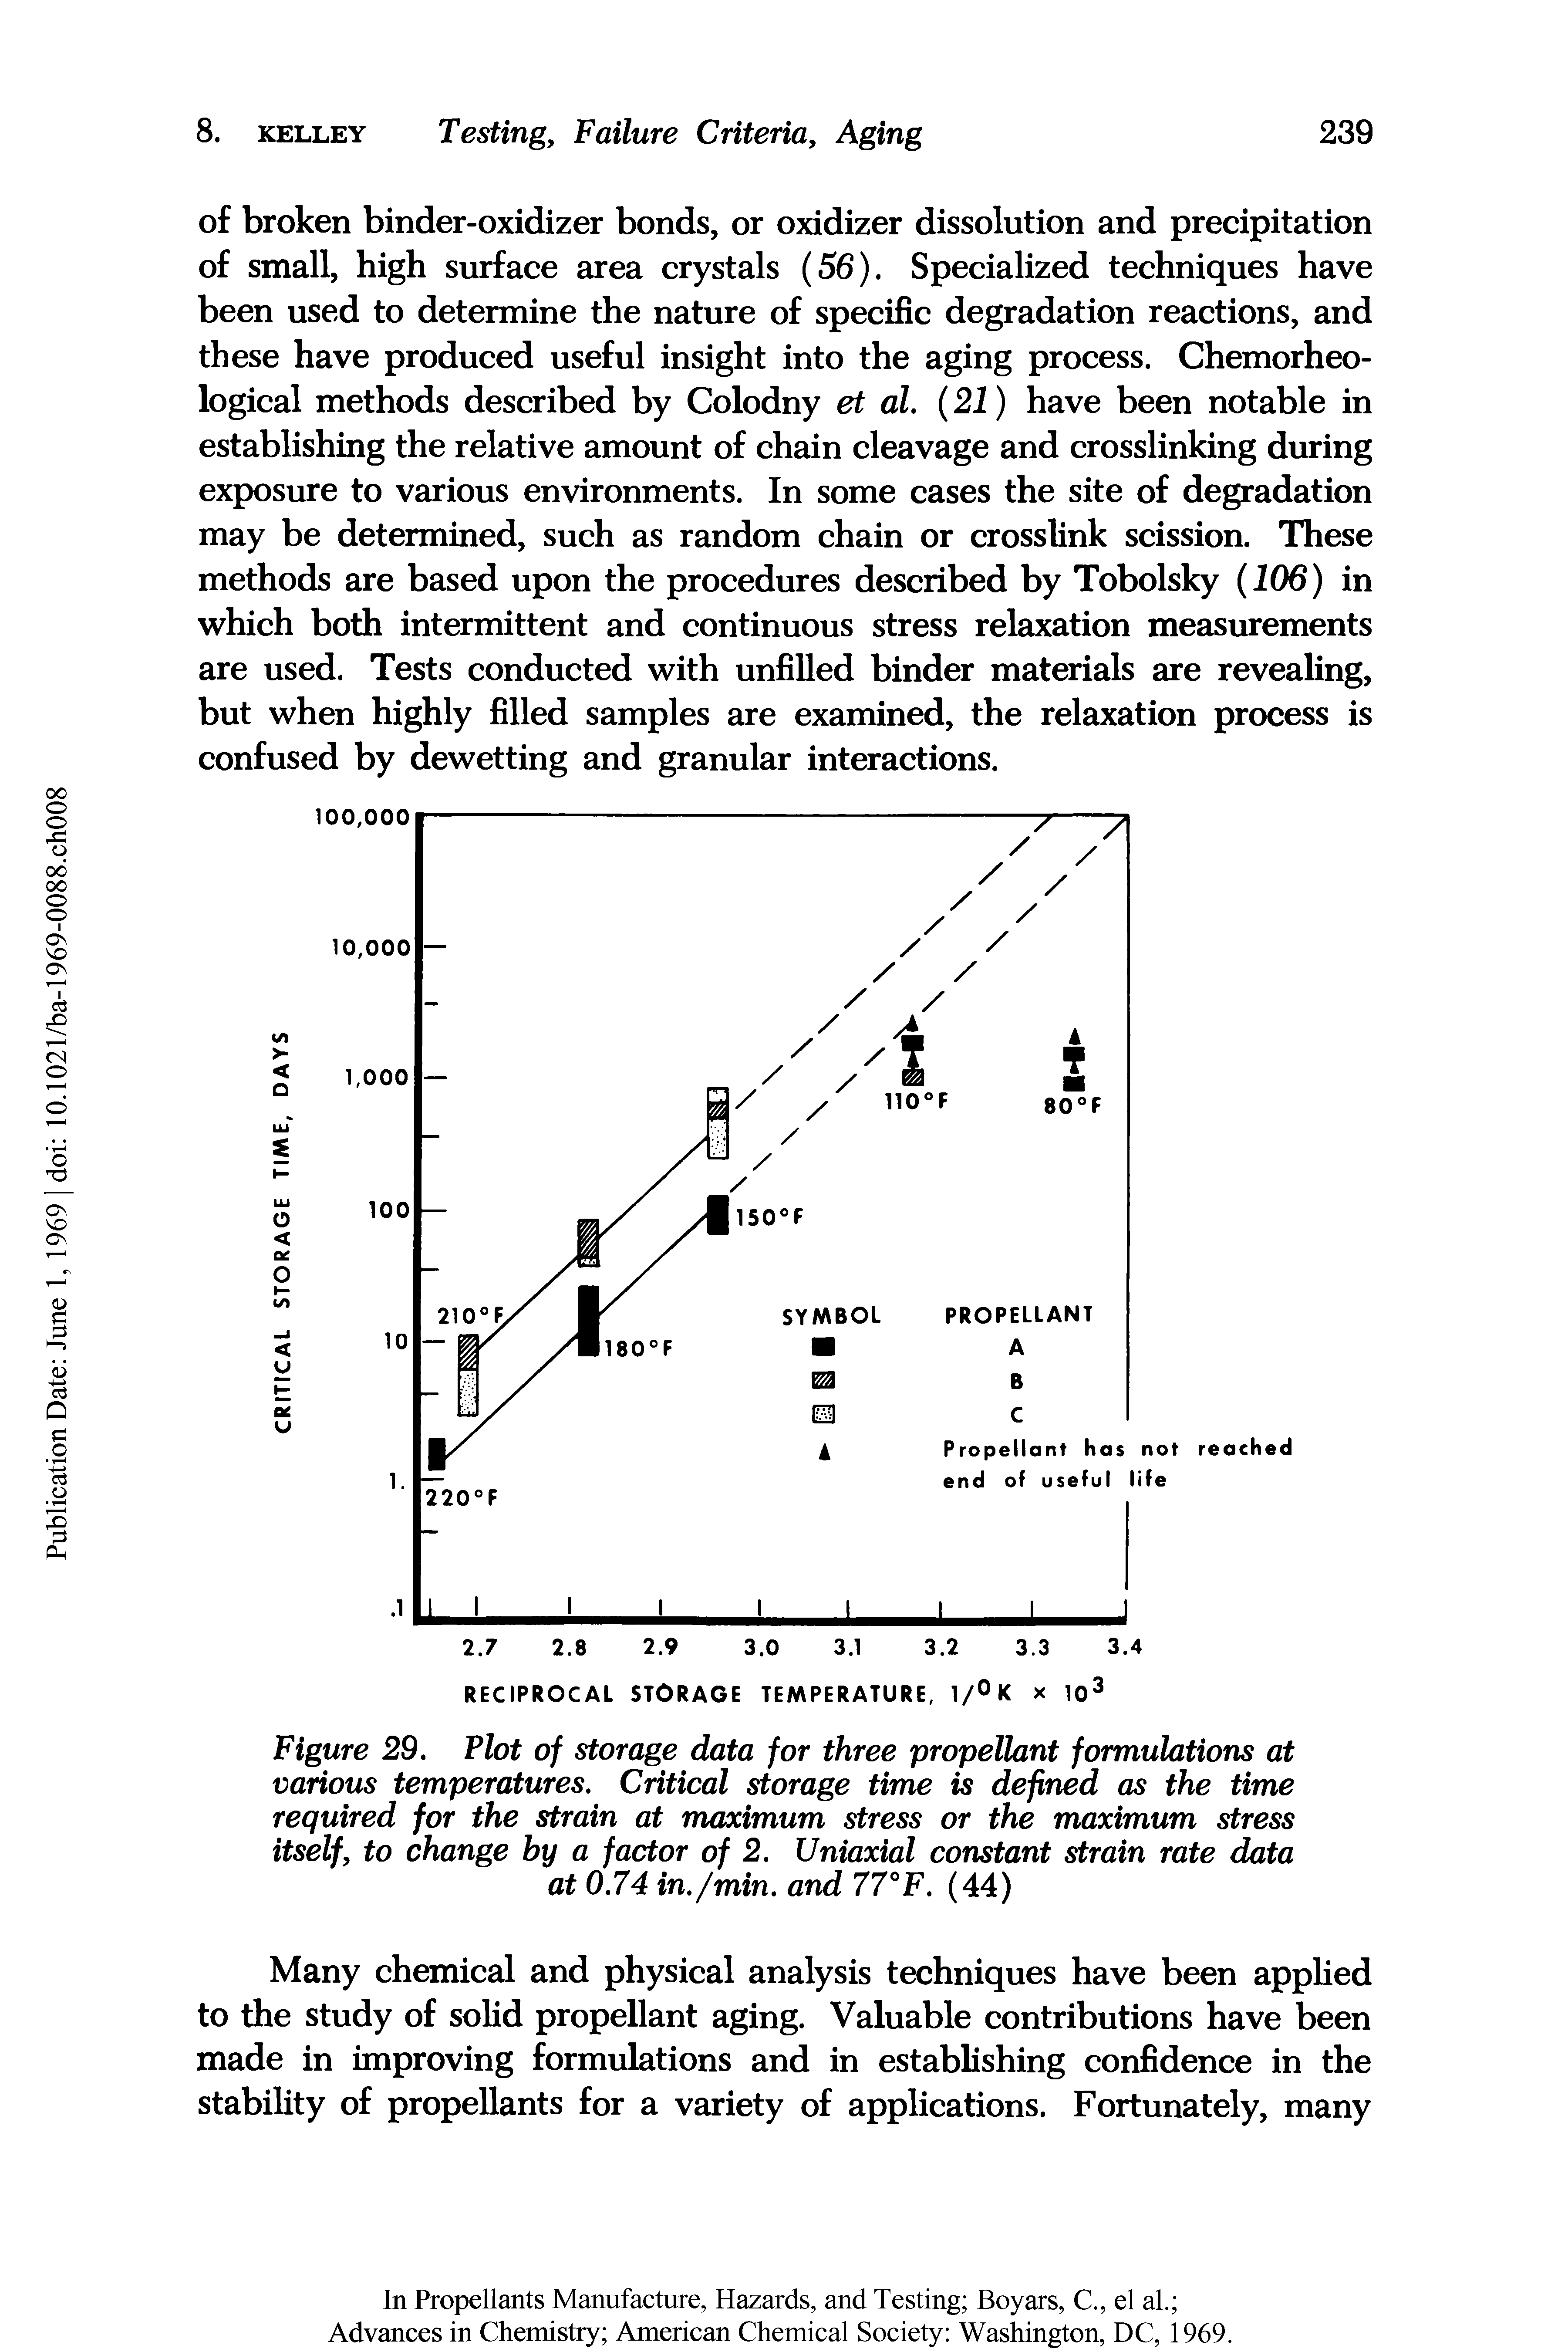 "Figure 29. Plot of <a href=""/info/data_storage"">storage data</a> for three <a href=""/info/formulations_gun_propellants"">propellant formulations</a> at <a href=""/info/at_various_temperatures"">various temperatures</a>. Critical <a href=""/info/storage_times"">storage time</a> is defined as the <a href=""/info/time_required"">time required</a> for the strain at <a href=""/info/maximum_stress"">maximum stress</a> or the <a href=""/info/maximum_stress"">maximum stress</a> itself, to change by a factor of 2. Uniaxial <a href=""/info/constant_strain_rate"">constant strain rate</a> data at 0.74 in./min. and 77°F. (44)"